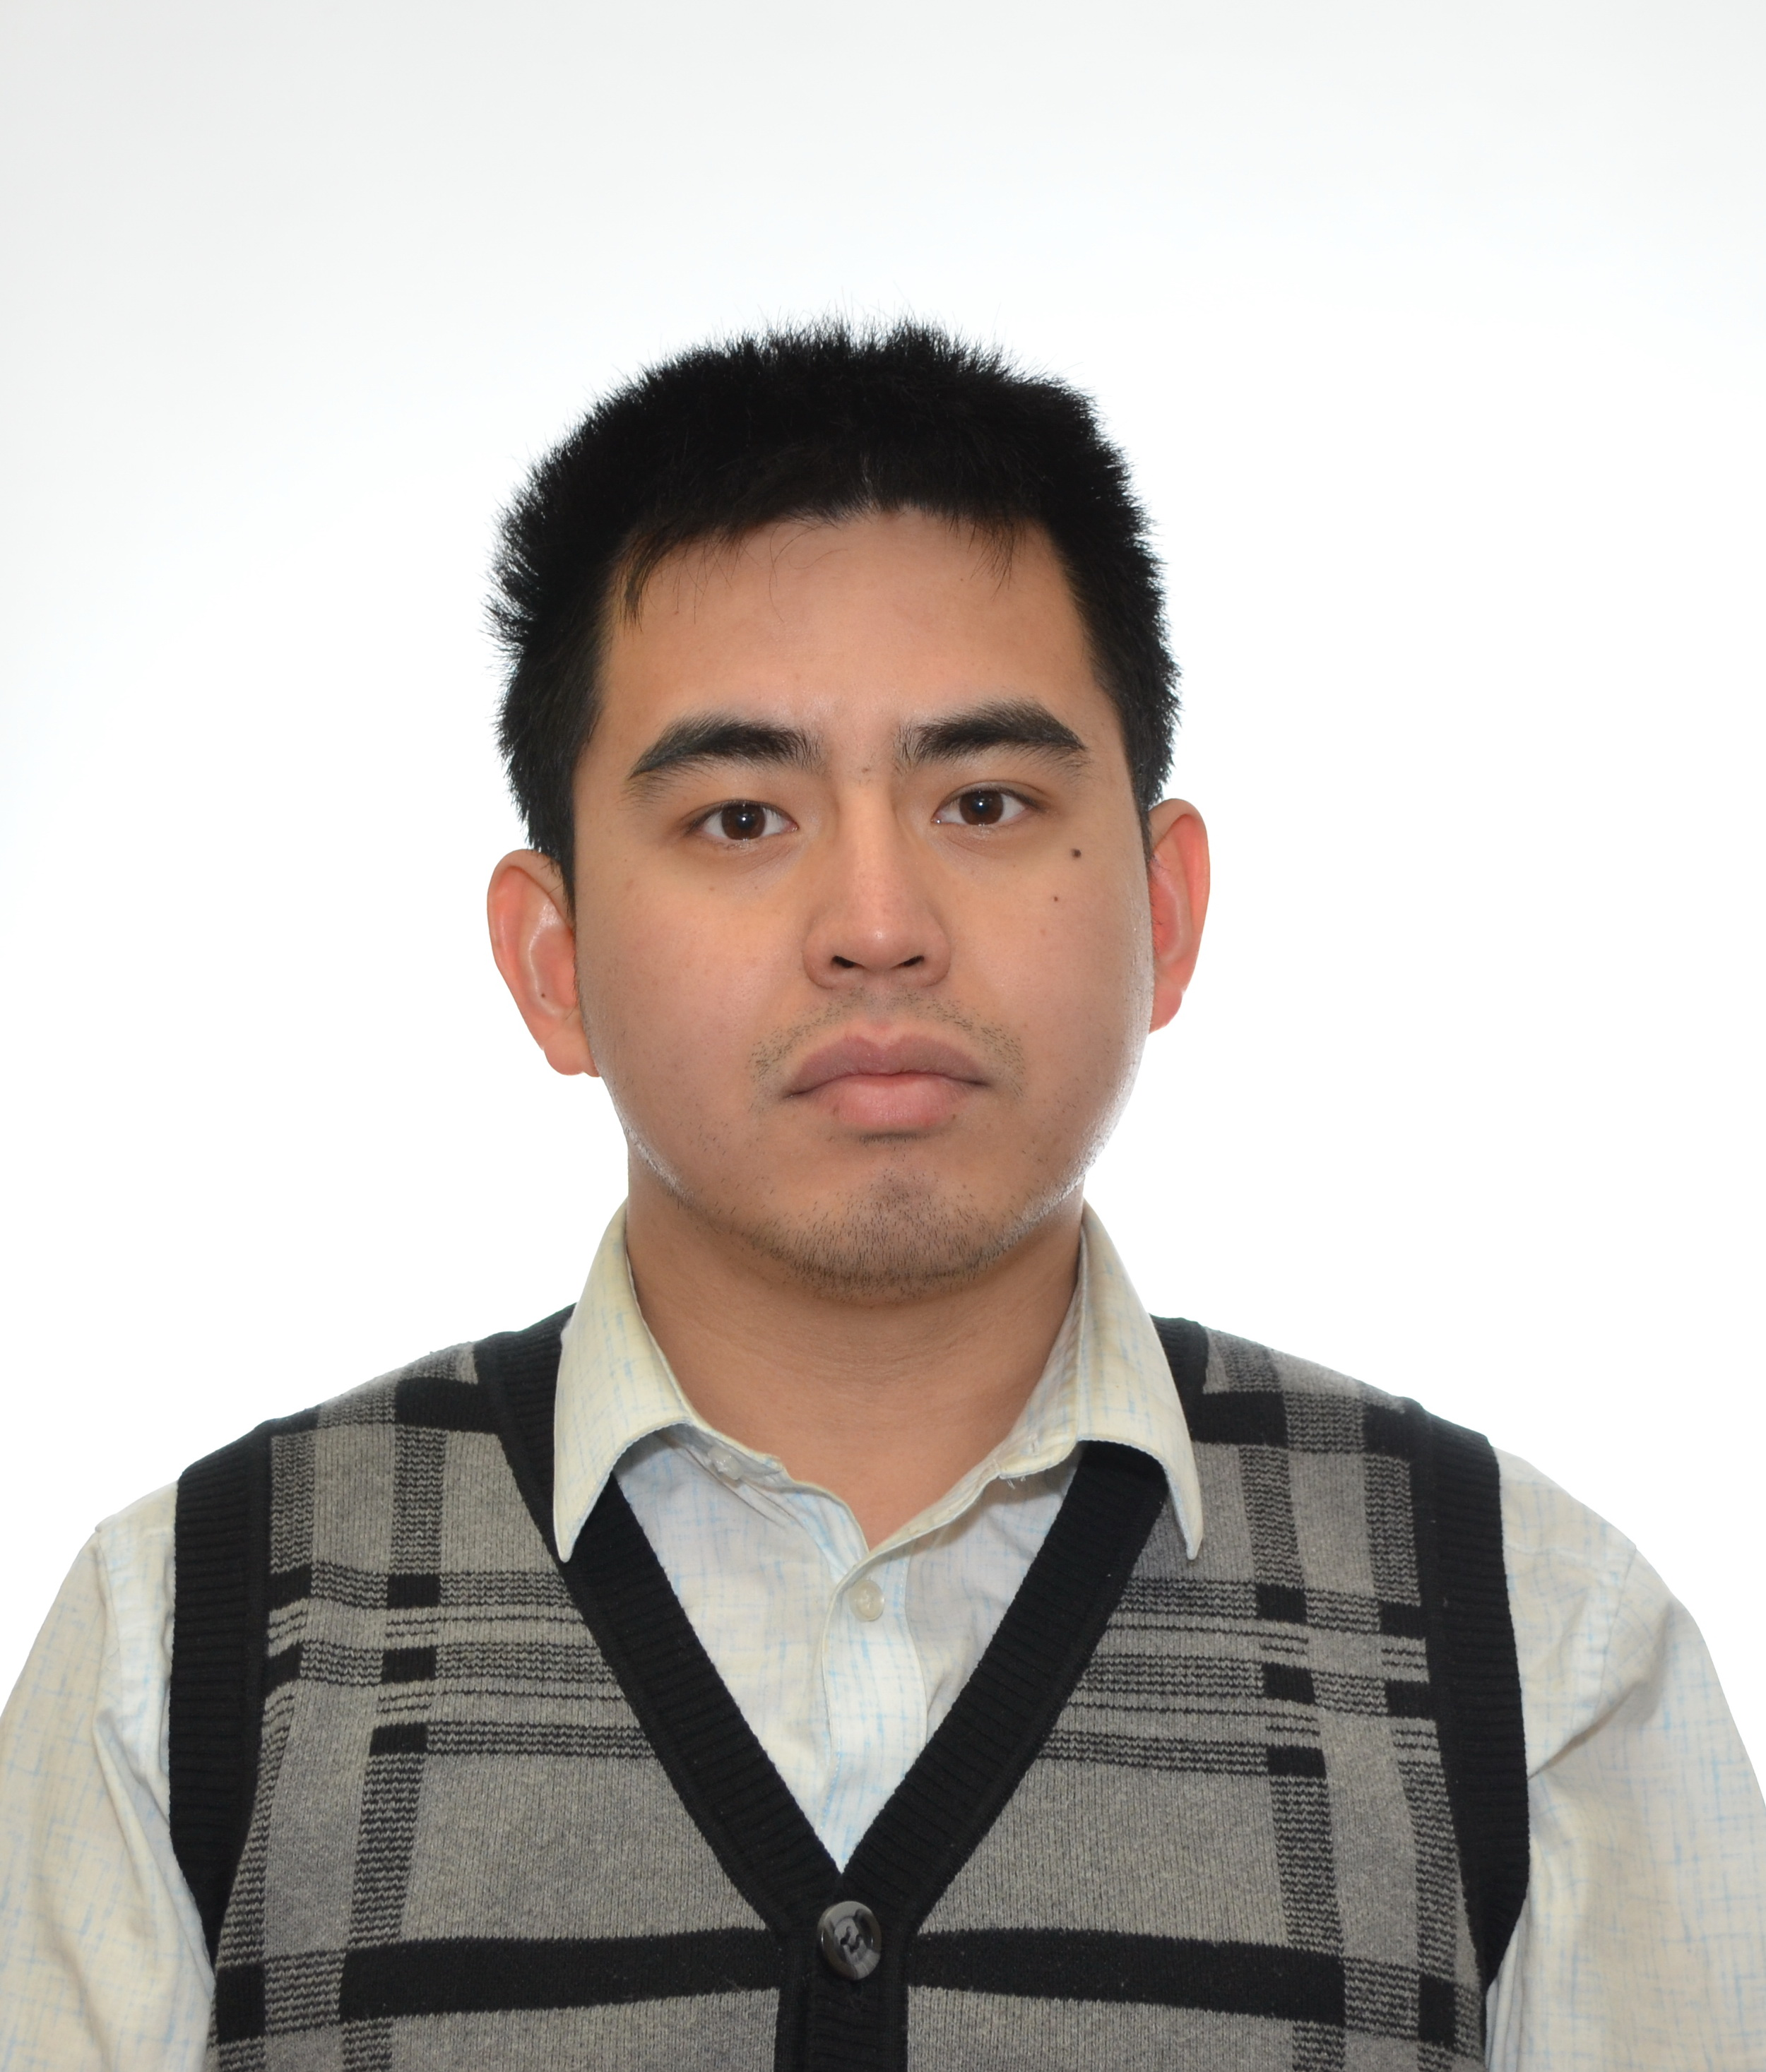 - Yichuan Ding, PhDAssistant Professor, Desautels Faculty of Management, McGill University